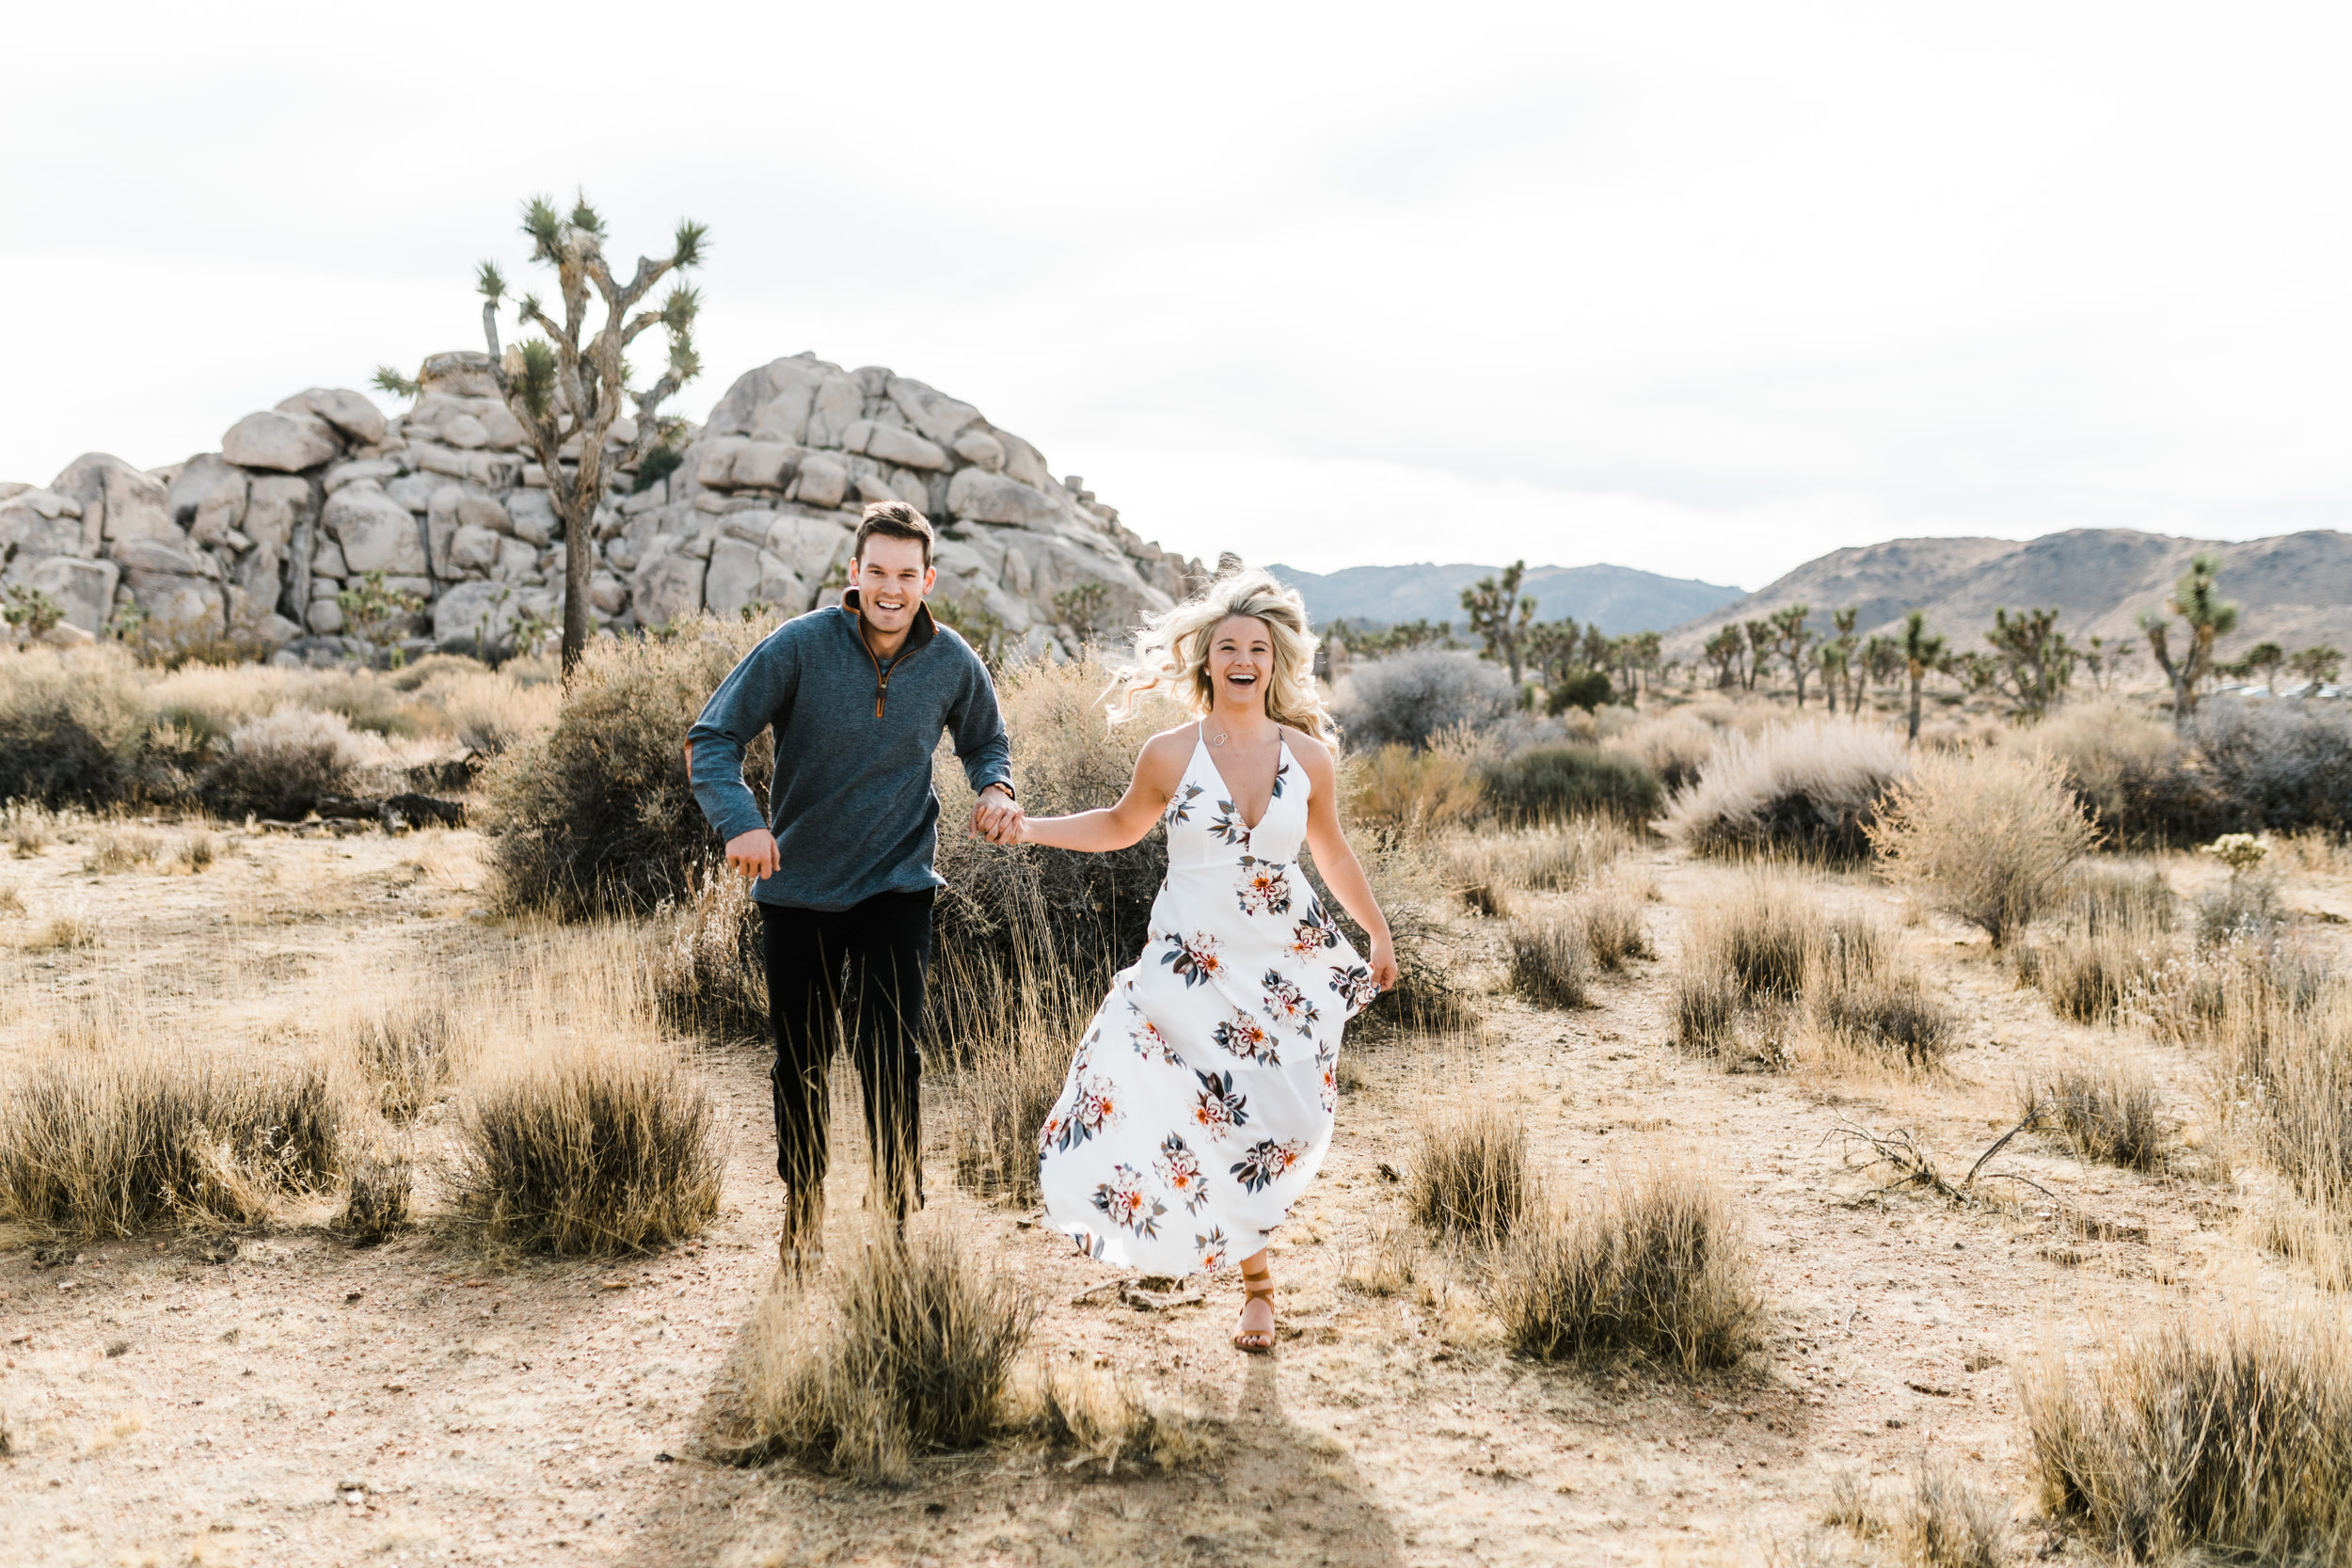 Dano&Andrew-Joshua-Tree-Engagement-Session-CRM-Media-Southern-California-Wedding-Photographer35